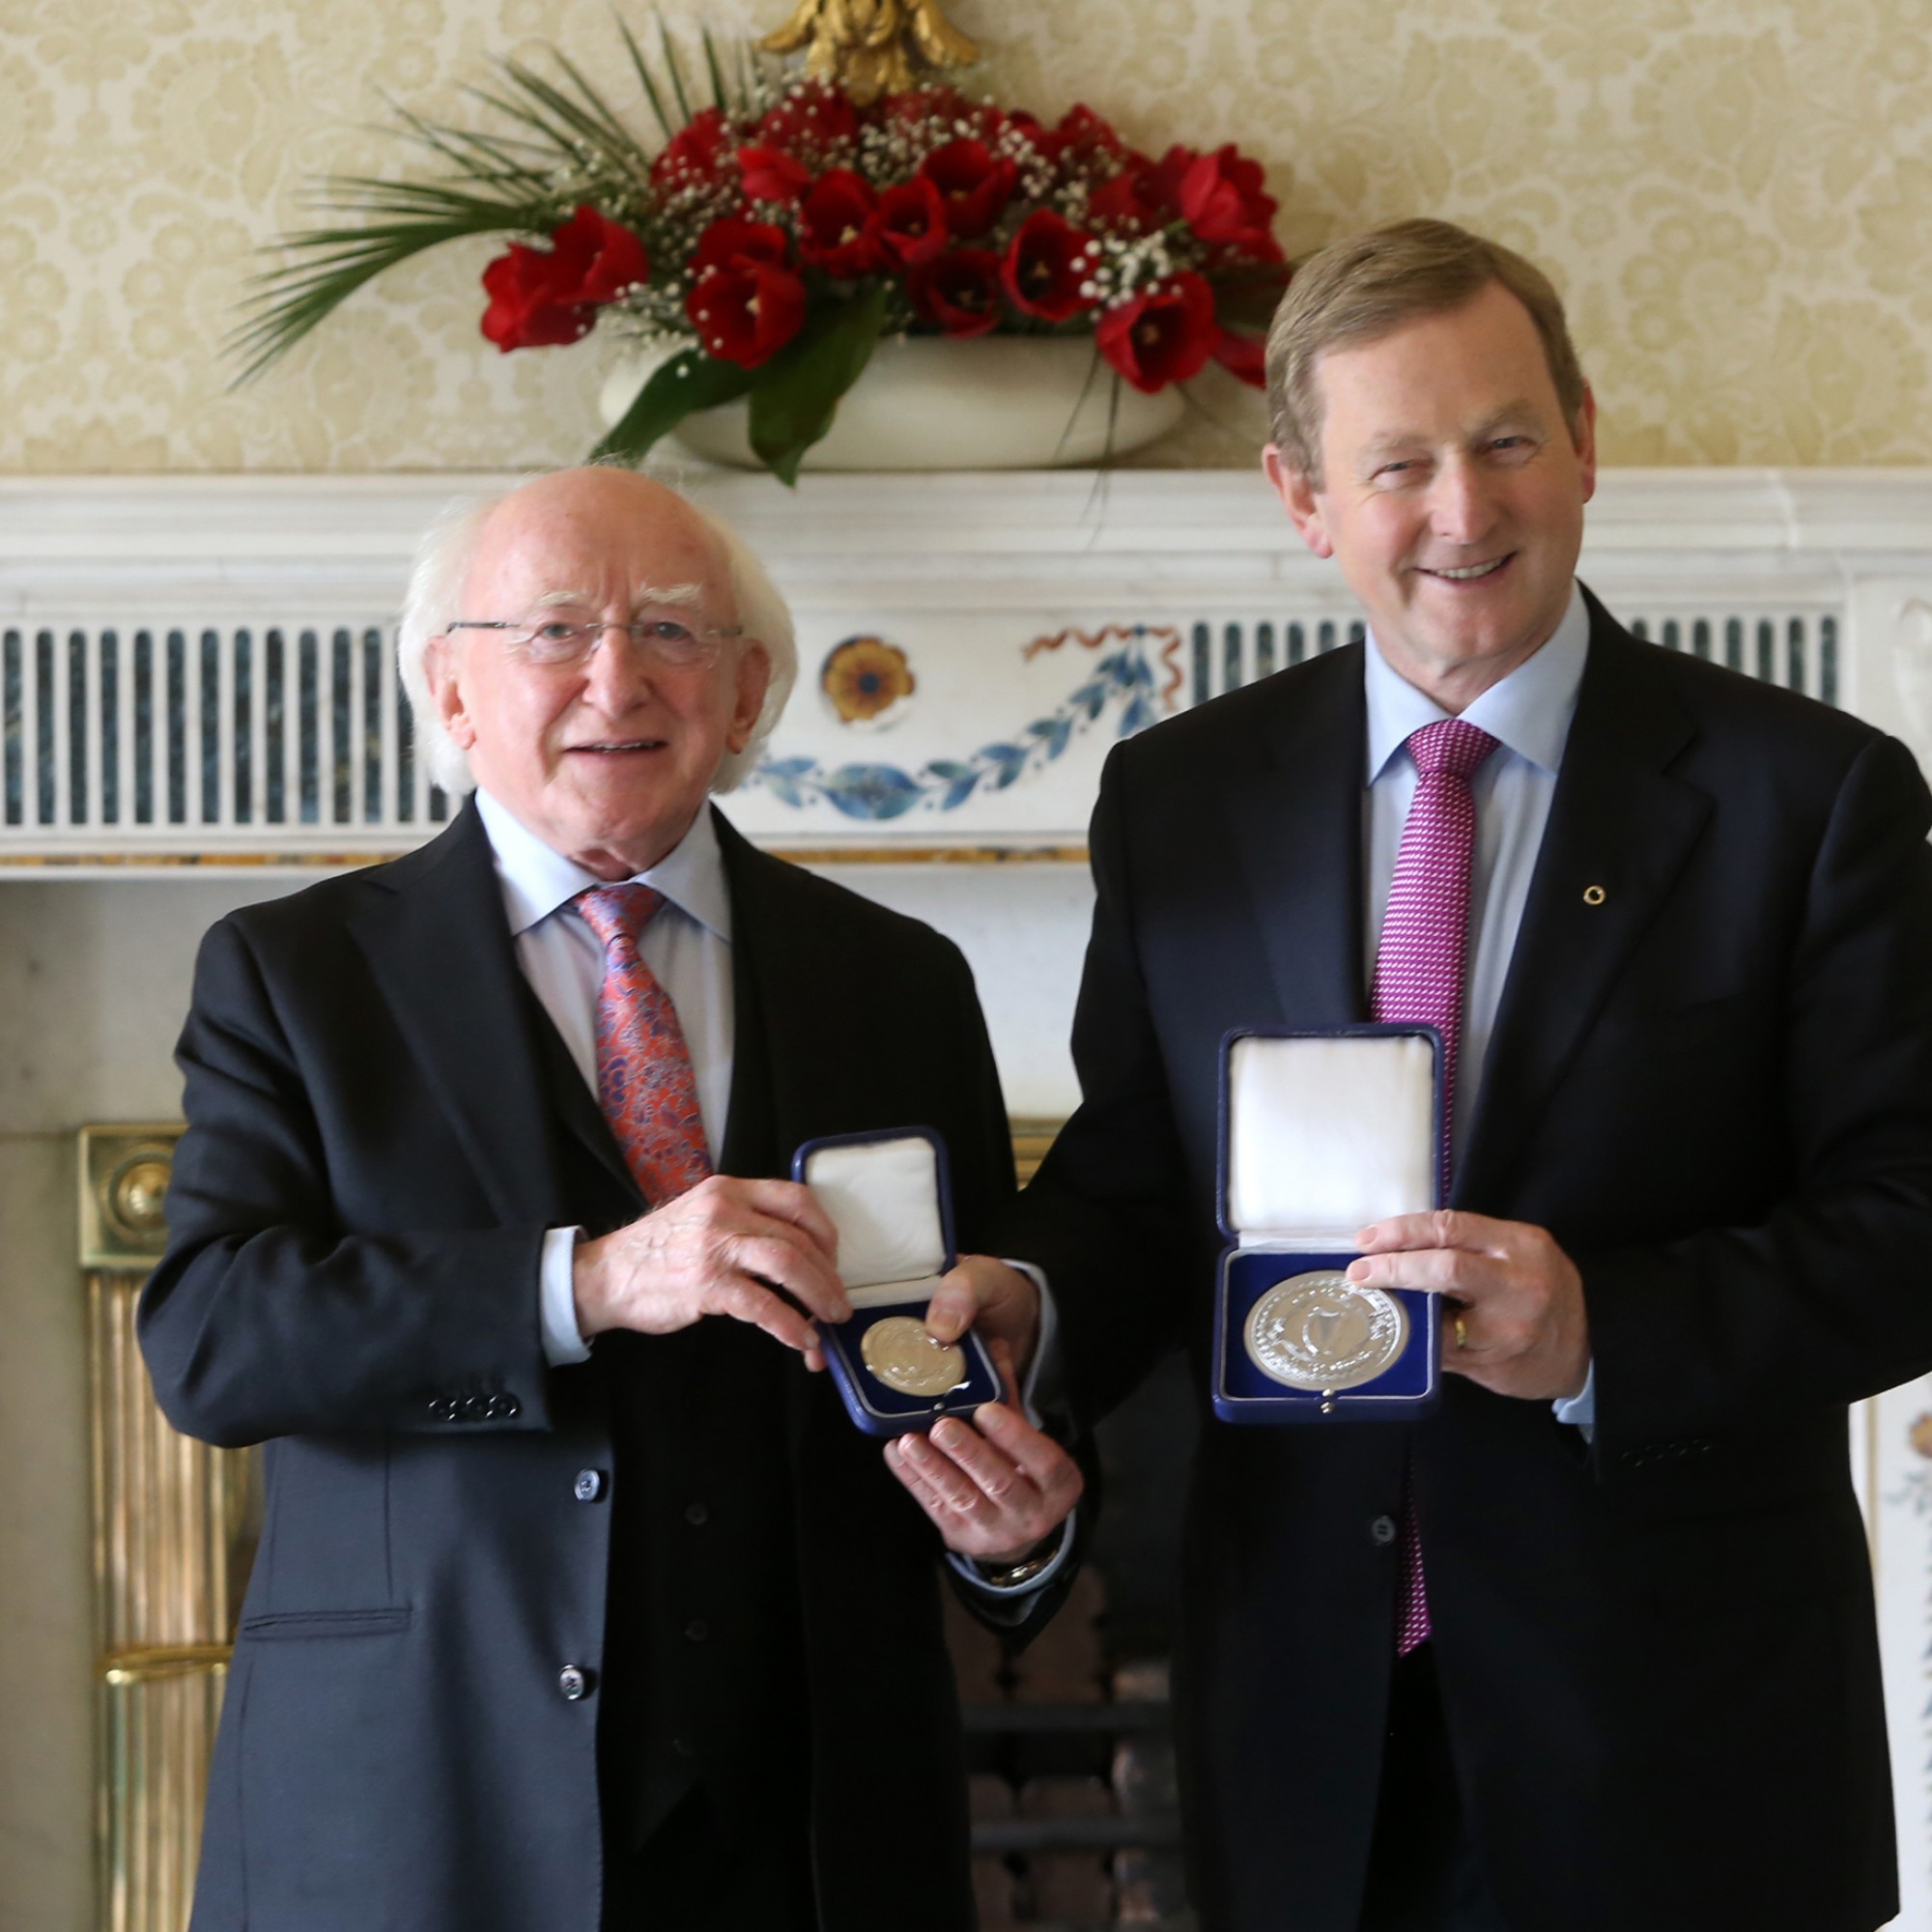 After 70 days, Enda Kenny has been re-elected Taoiseach